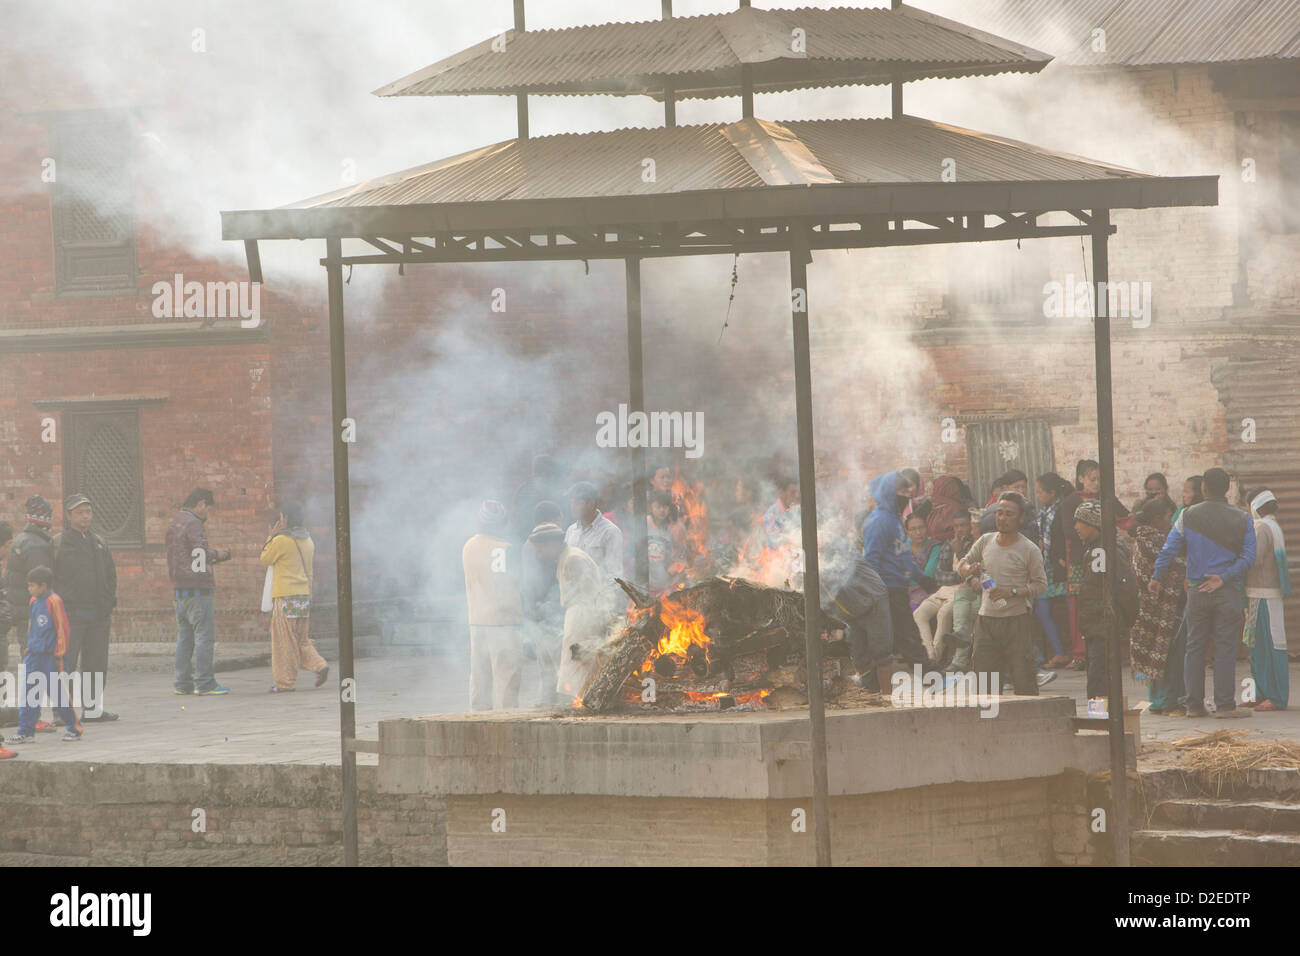 A Hindu funeral at Pashupatinath Temple, a Hindu temple of Lord Shiva located on the banks of the Bagmati River - Stock Image